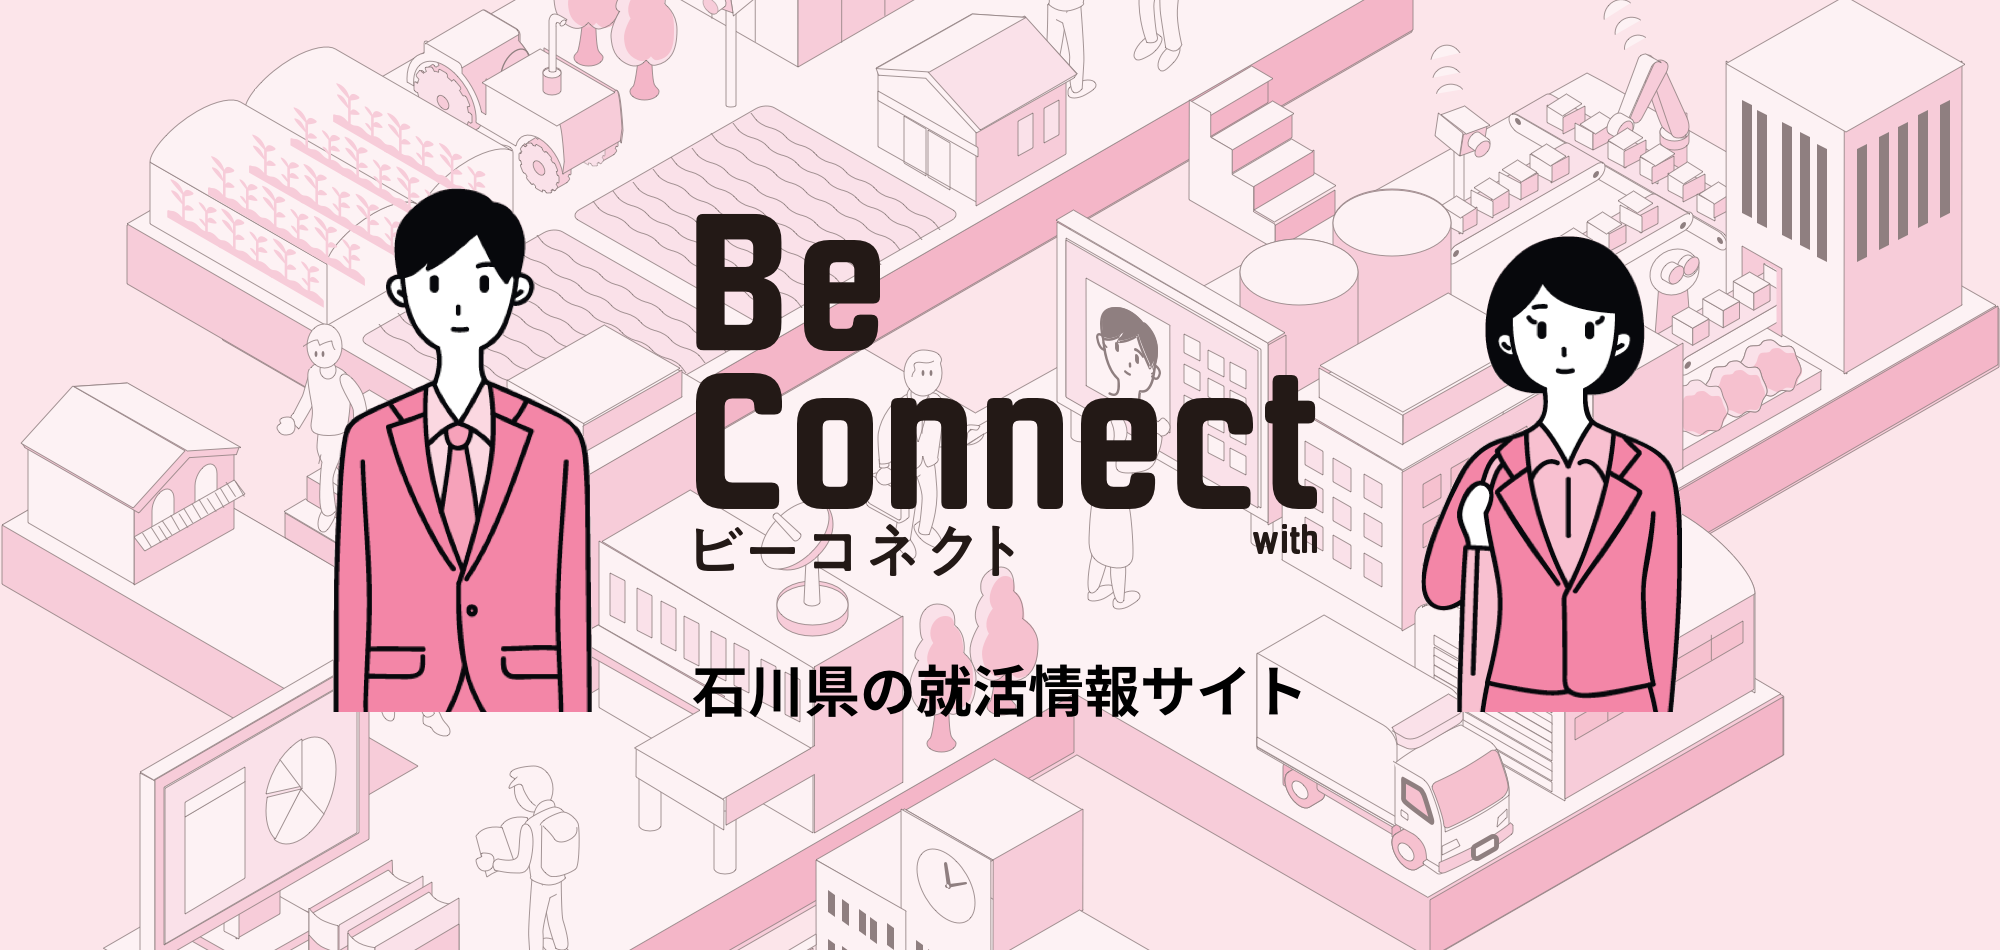 Be Connect